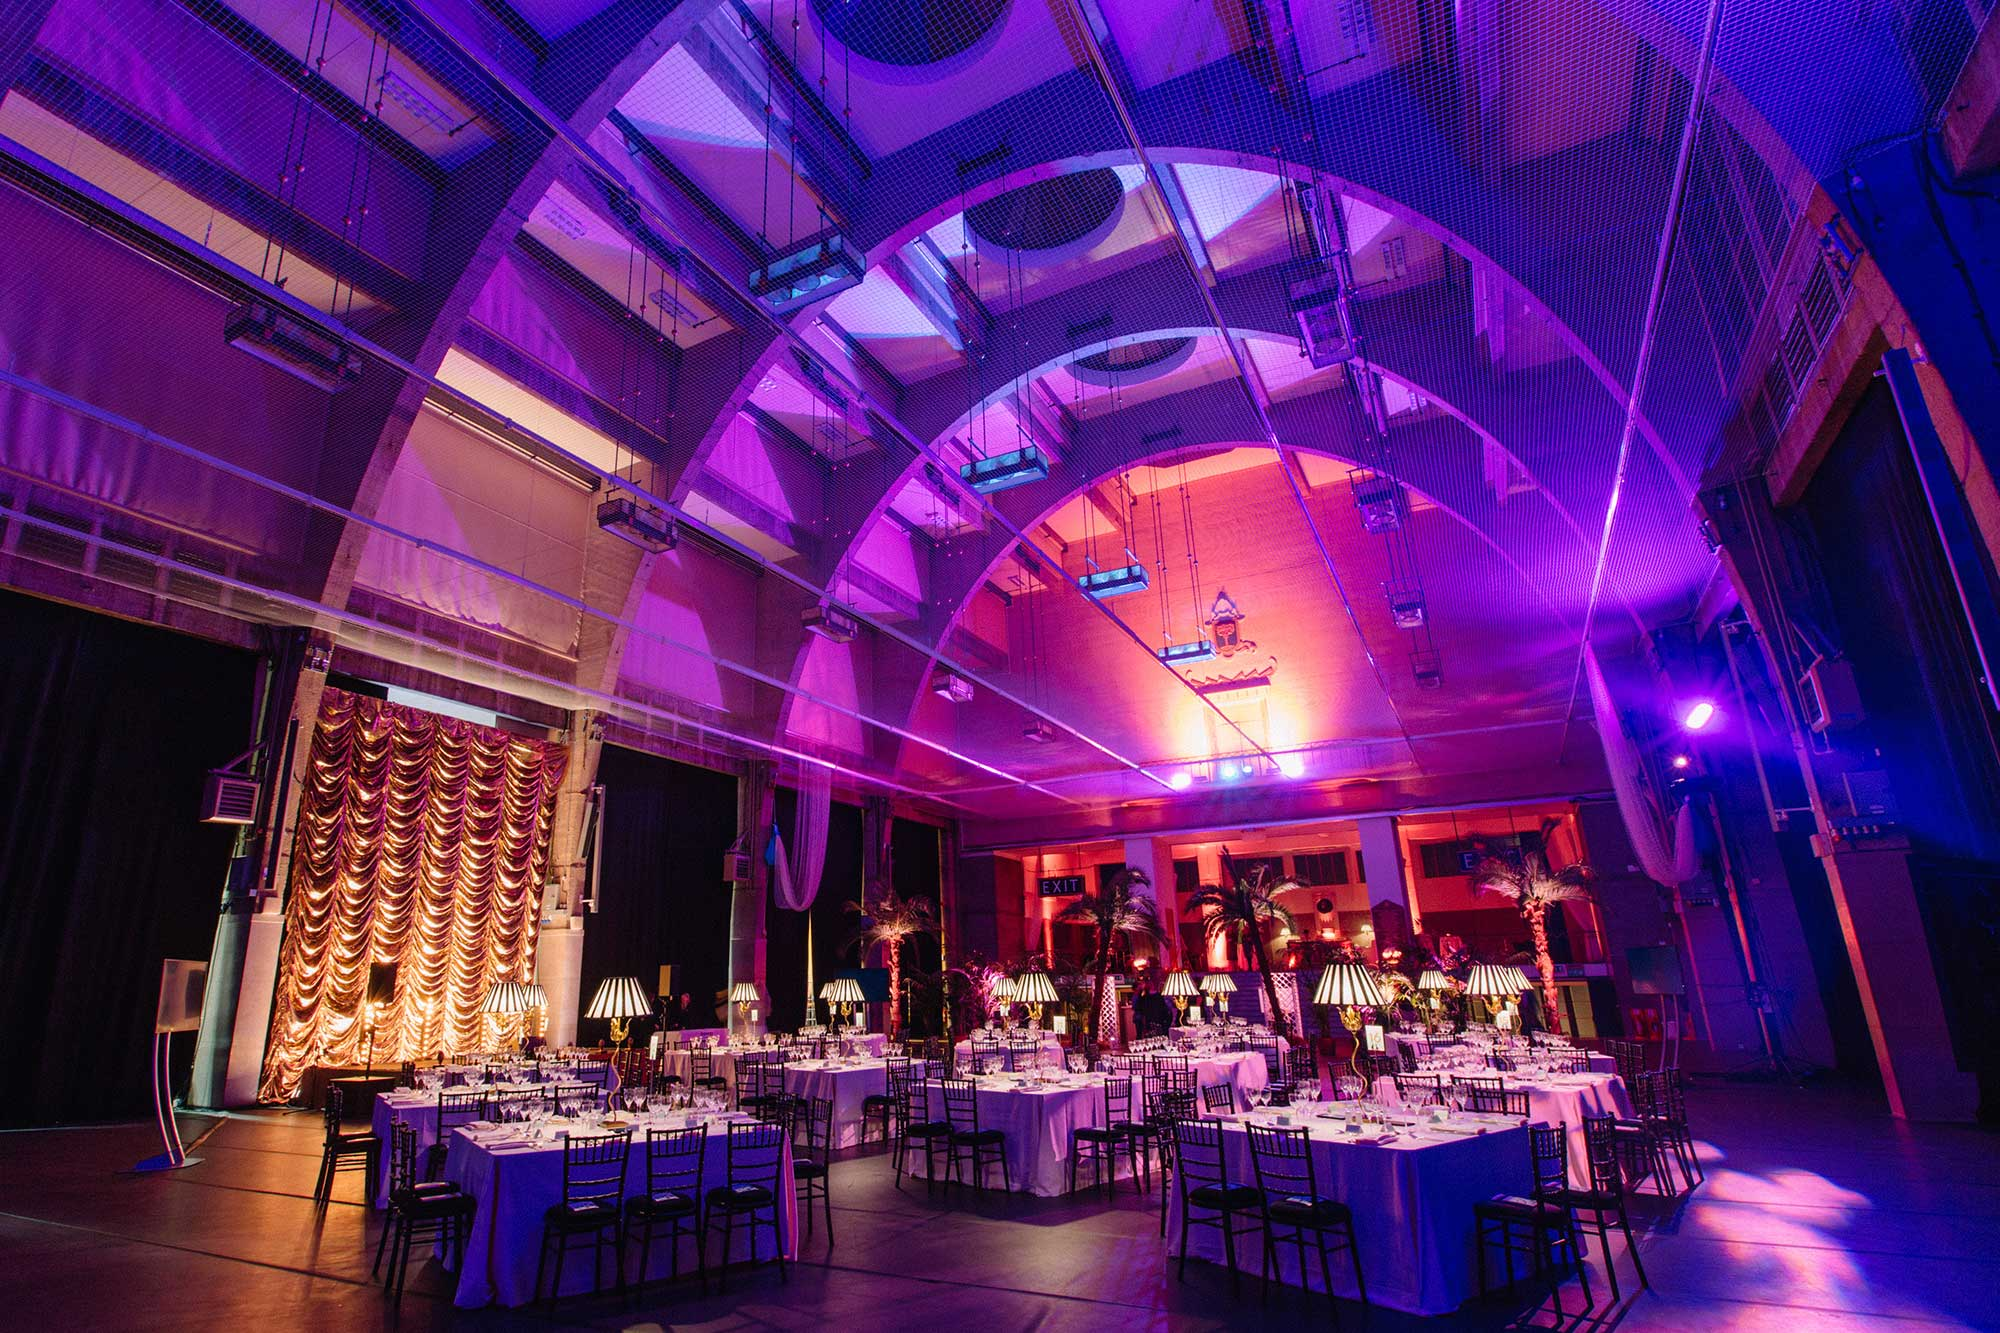 Lux Technical, Lighting, Sound Tech, Annual Gala Dinner, Fundraising Event, Styling, Live Production, Royal Horticultural Halls, London, UK, Story Events, Megan McConnell, Jimmy Garcia Catering